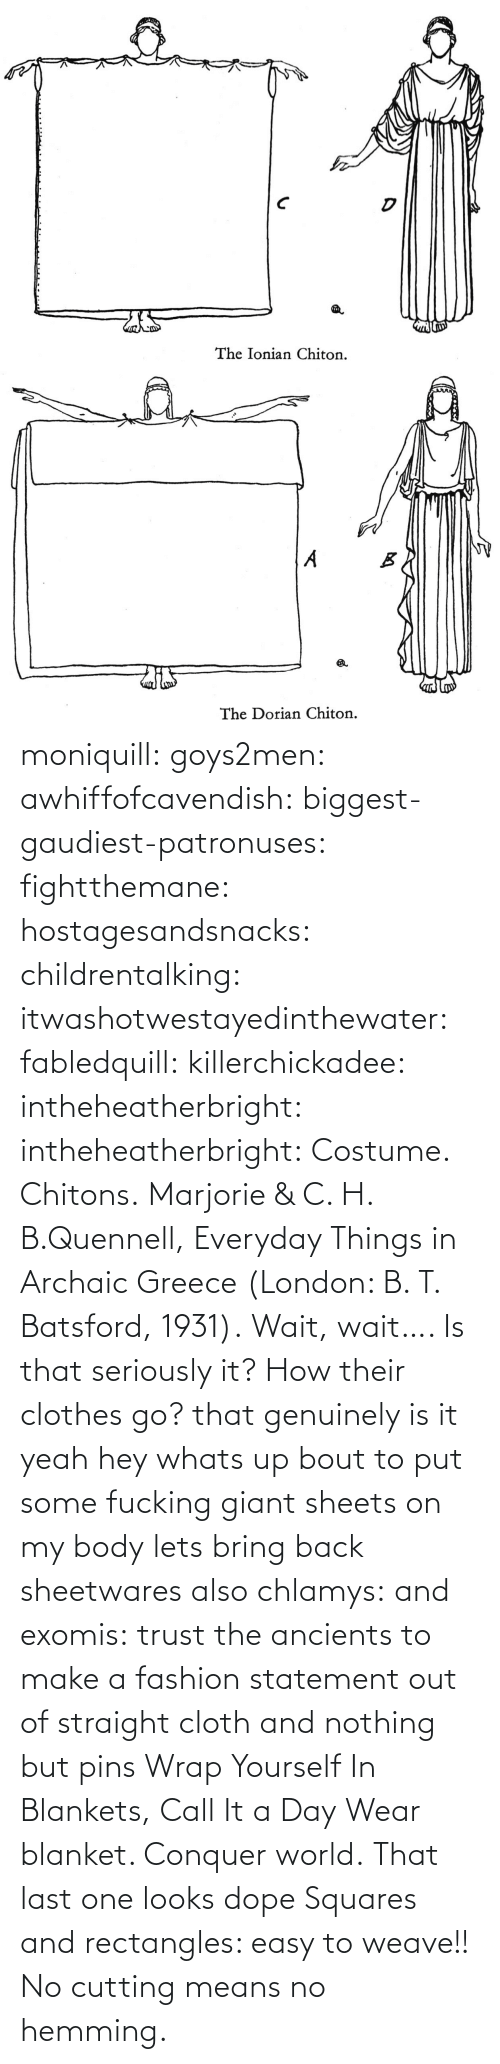 Biggest: moniquill: goys2men:  awhiffofcavendish:  biggest-gaudiest-patronuses:  fightthemane:  hostagesandsnacks:  childrentalking:  itwashotwestayedinthewater:  fabledquill:  killerchickadee:  intheheatherbright:  intheheatherbright:  Costume. Chitons.  Marjorie & C. H. B.Quennell, Everyday Things in Archaic Greece (London: B. T. Batsford, 1931).  Wait, wait…. Is that seriously it? How their clothes go?  that genuinely is it  yeah hey whats up bout to put some fucking giant sheets on my body  lets bring back sheetwares  also chlamys: and exomis:  trust the ancients to make a fashion statement out of straight cloth and nothing but pins  Wrap Yourself In Blankets, Call It a Day  Wear blanket. Conquer world.   That last one looks dope    Squares and rectangles: easy to weave!! No cutting means no hemming.